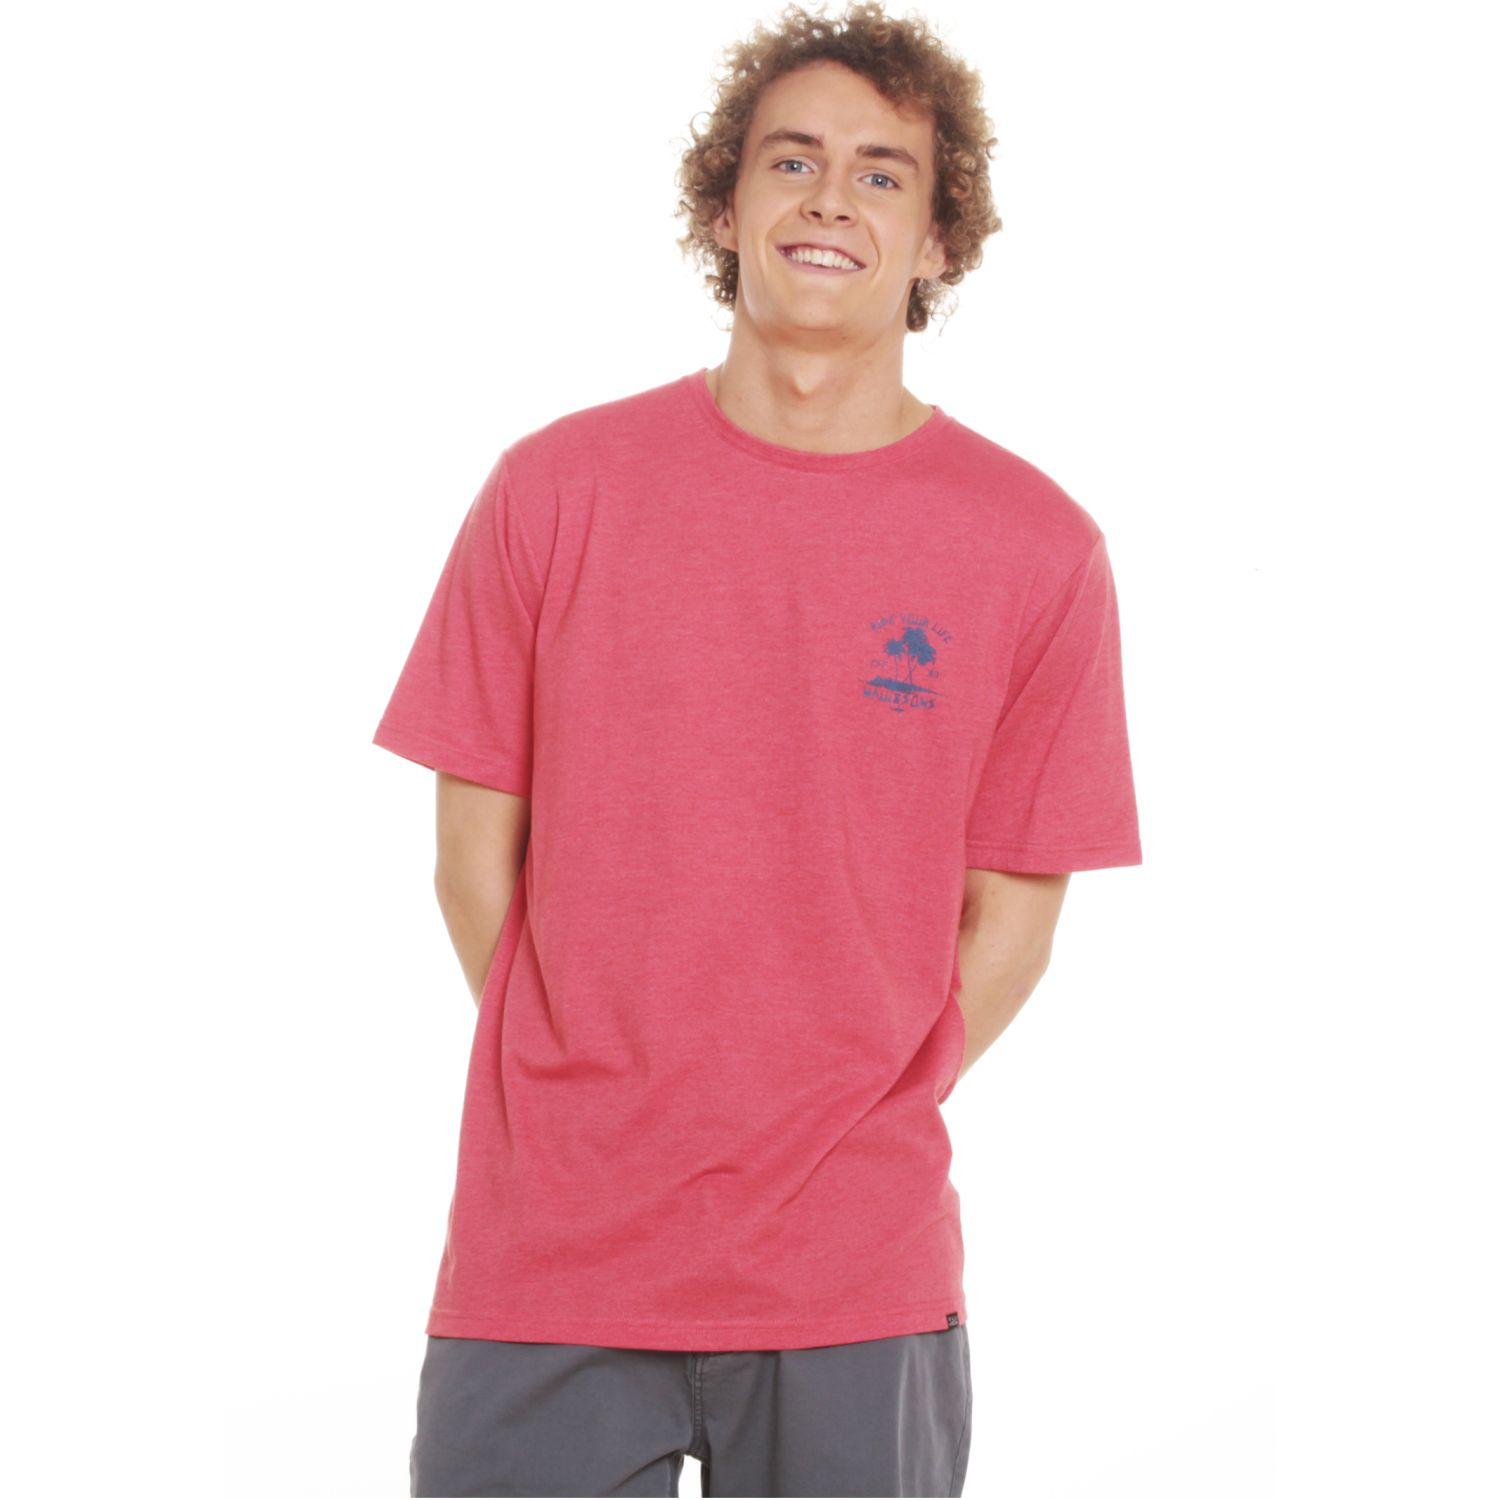 MAUI AND SONS Polera Mc 5p166-Mv20 Rojo Polos